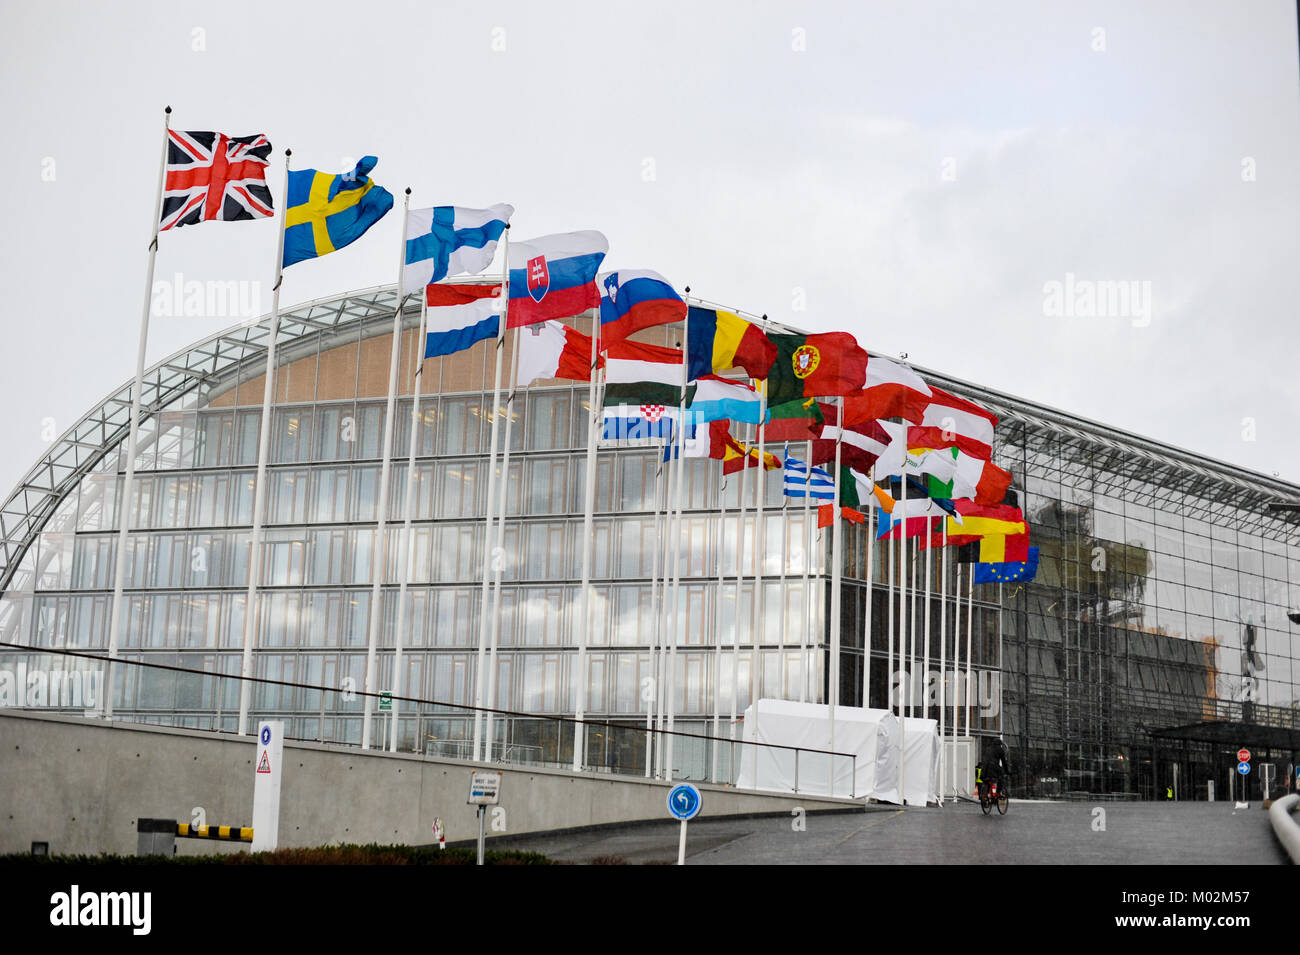 Flags of the european countries in front of the European Investment Bank, Luxembourg - Stock Image